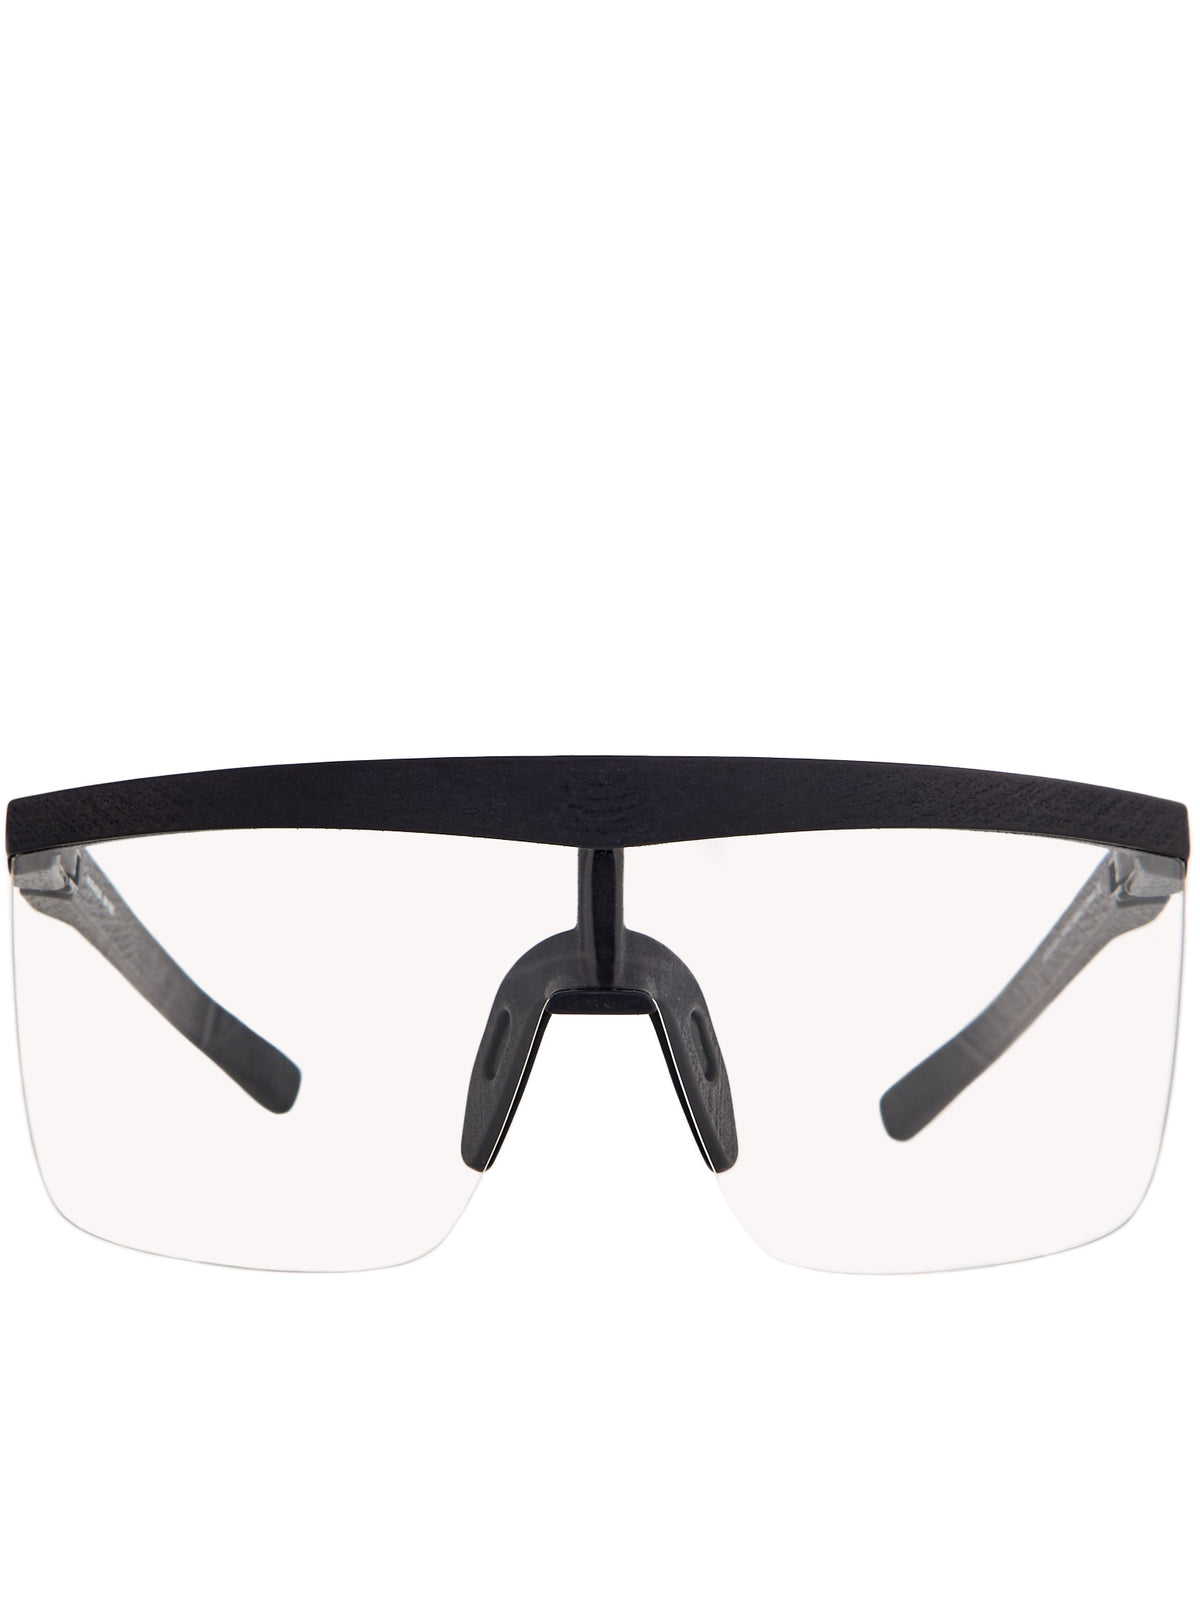 'Trust' Sunglasses (TRUST-MD1-PITCH-BLACK-CLEAR)